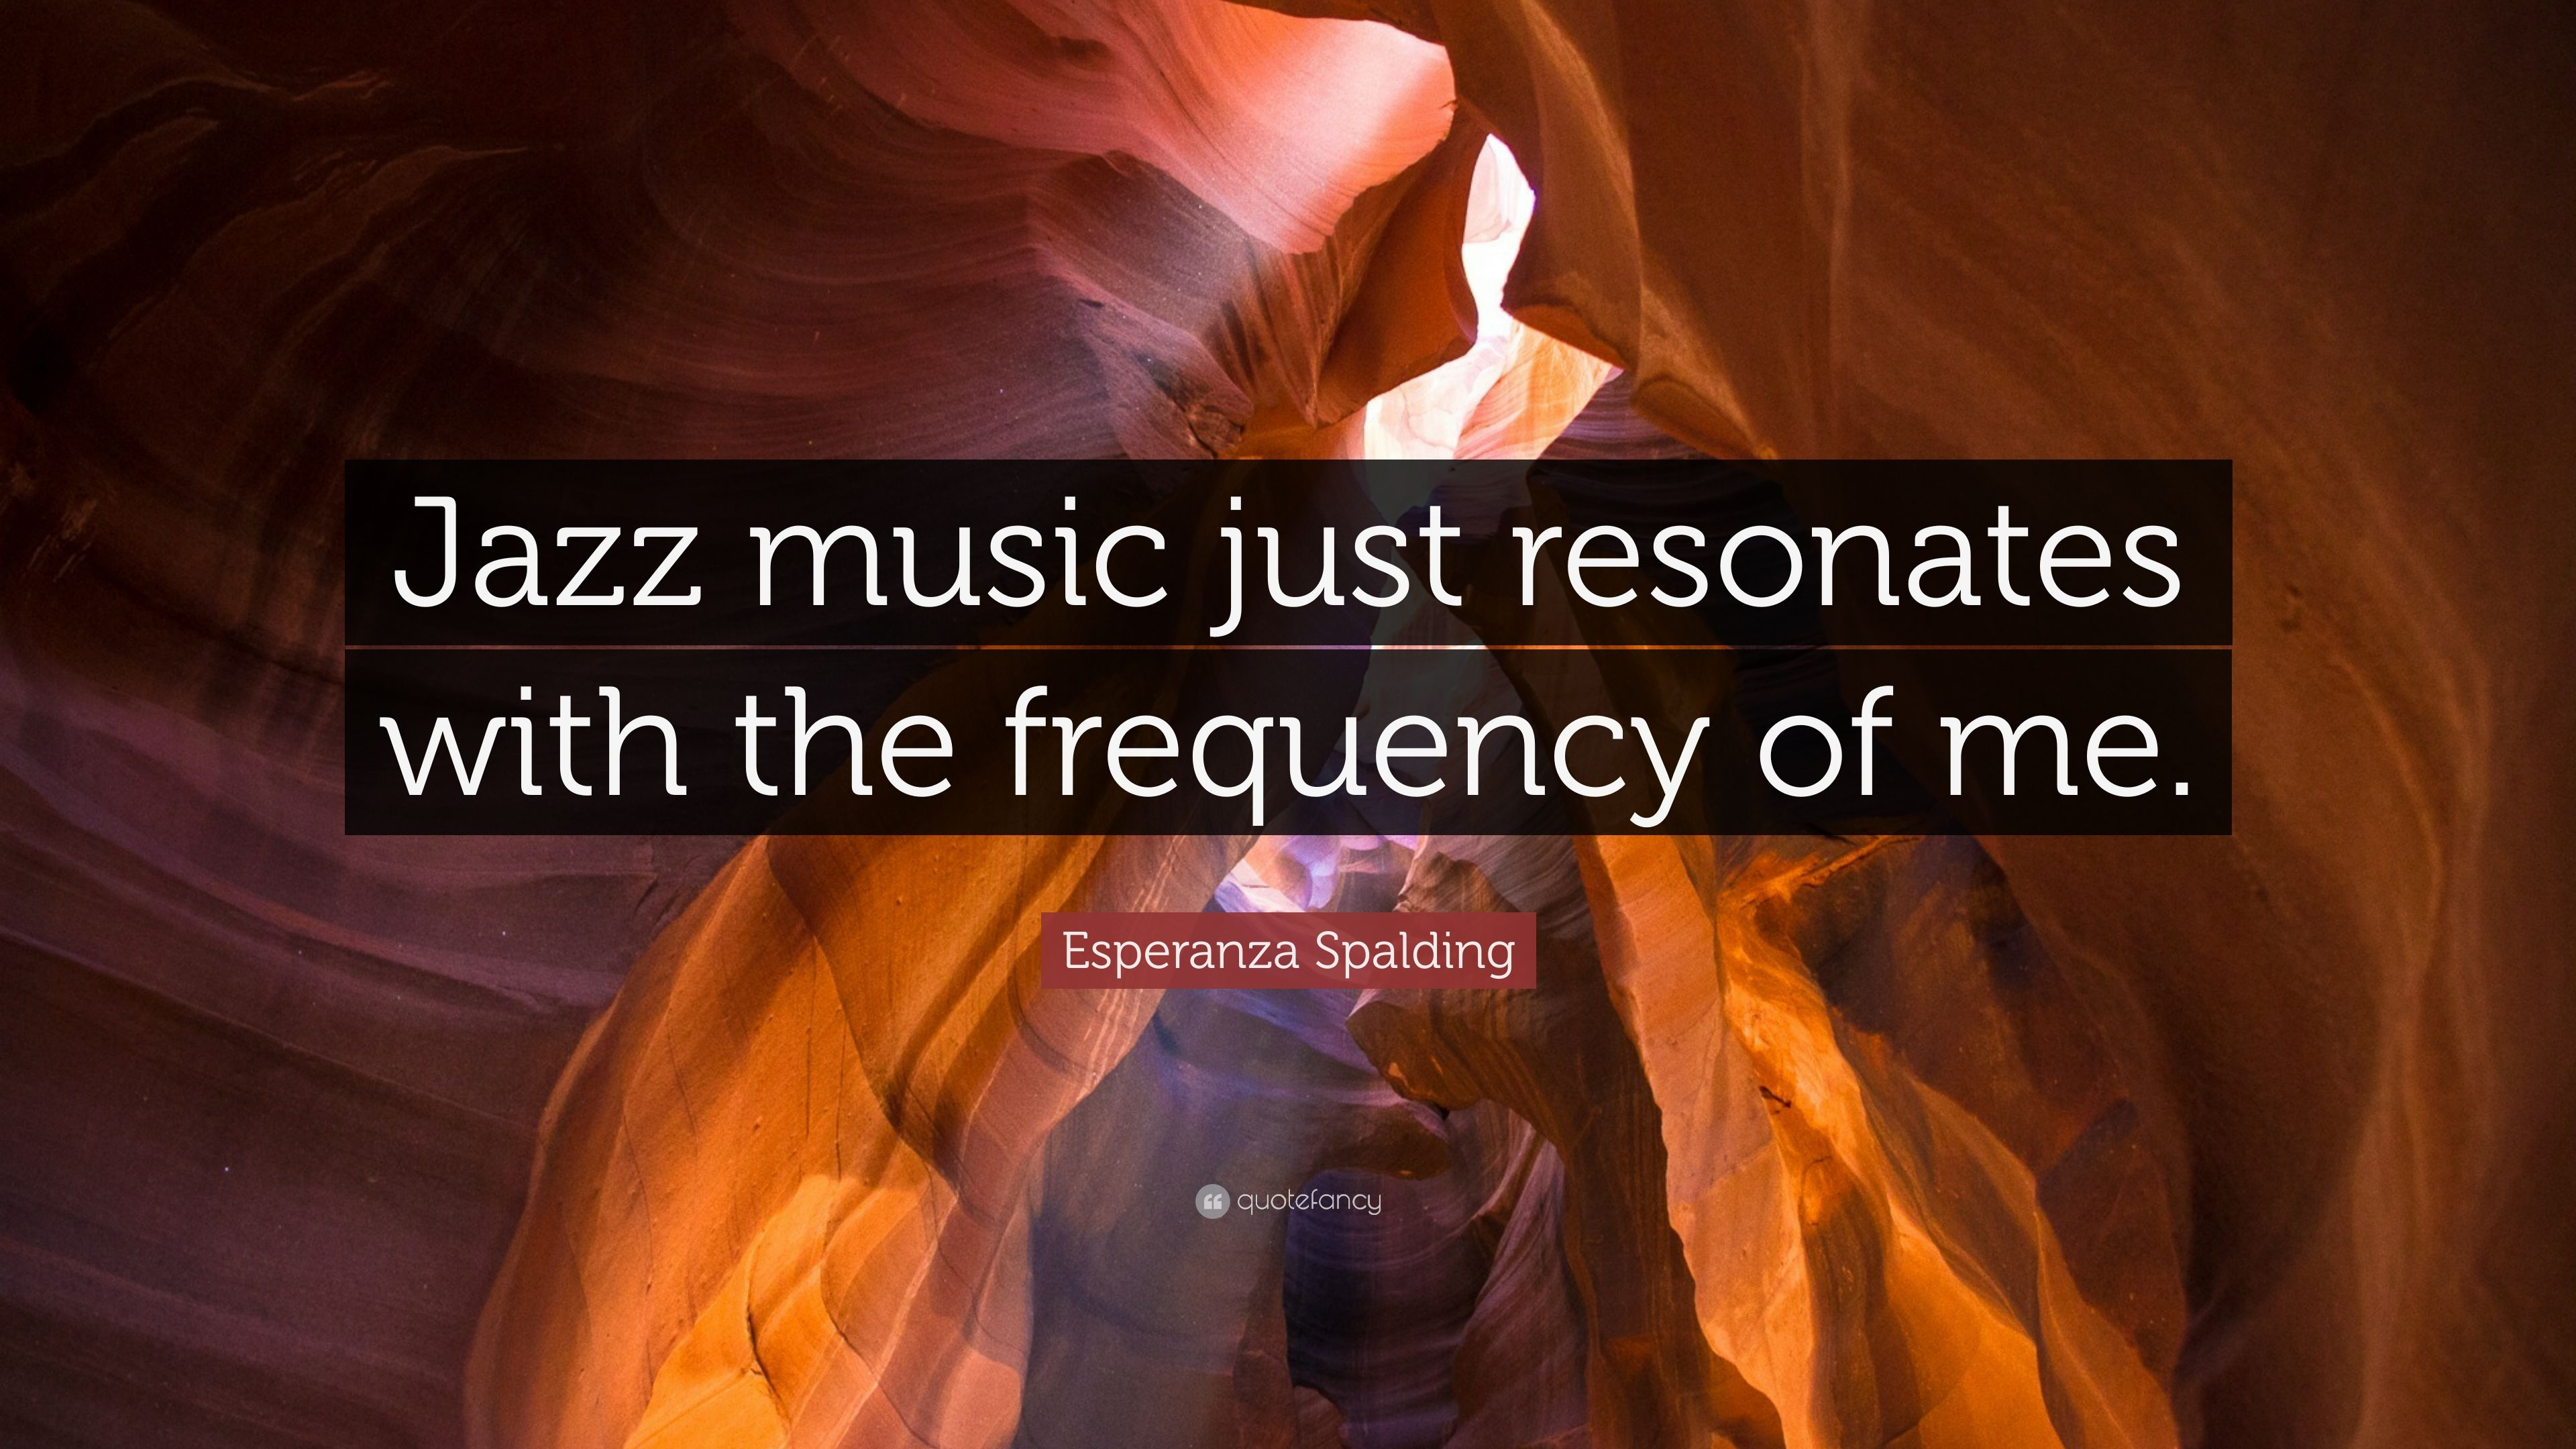 Great Wallpaper Music Frequency - 4768464-Esperanza-Spalding-Quote-Jazz-music-just-resonates-with-the  You Should Have_264991.jpg